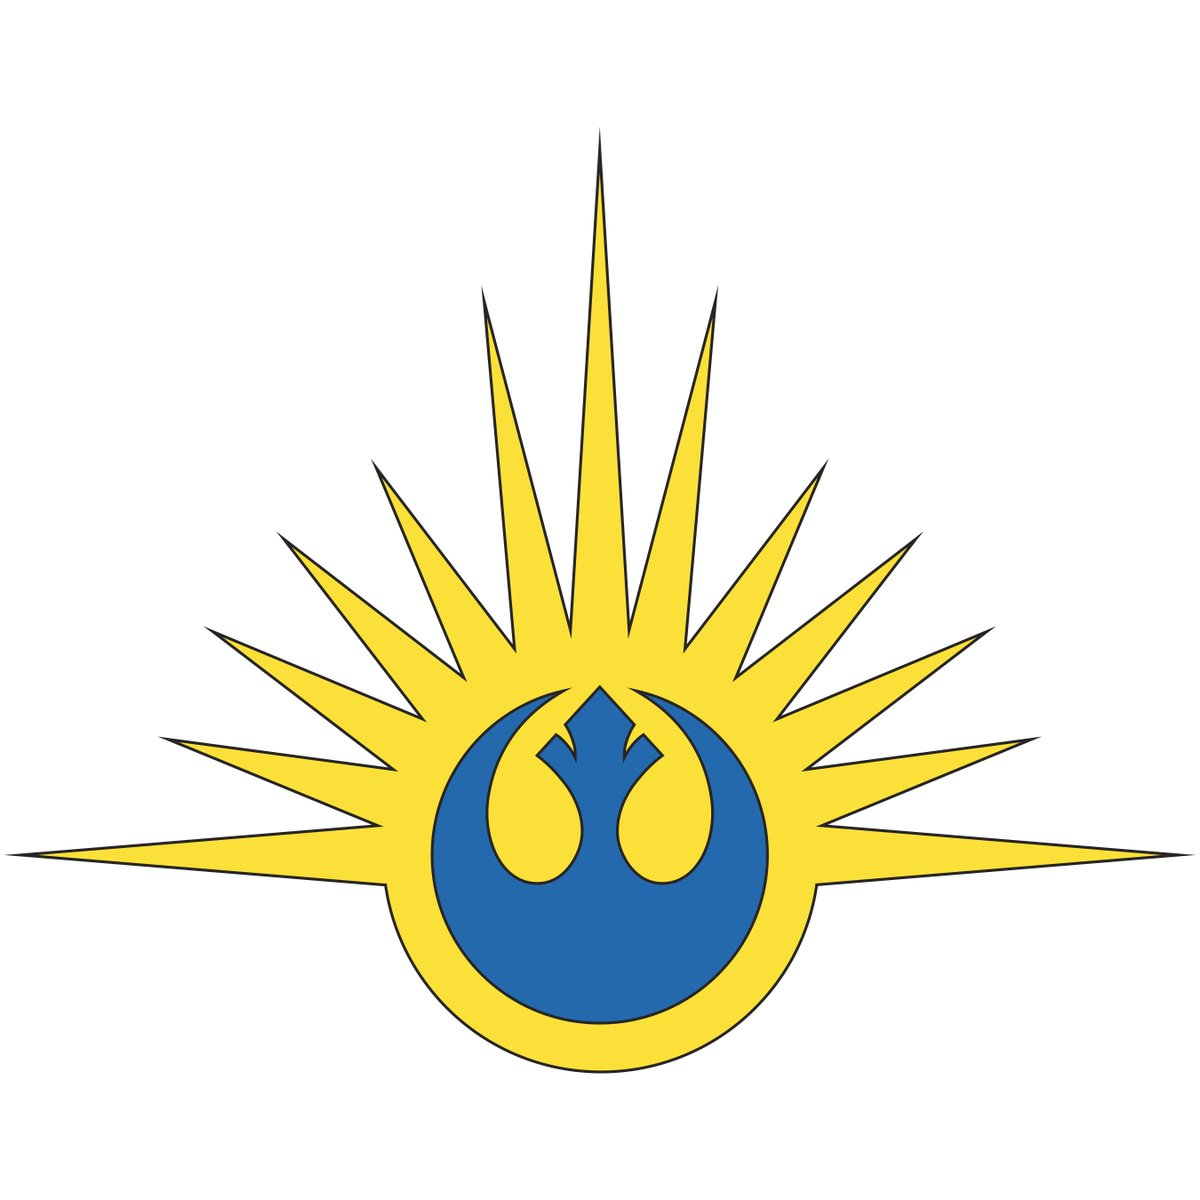 Star wars books on twitter curious about the early new - Republic star wars logo ...